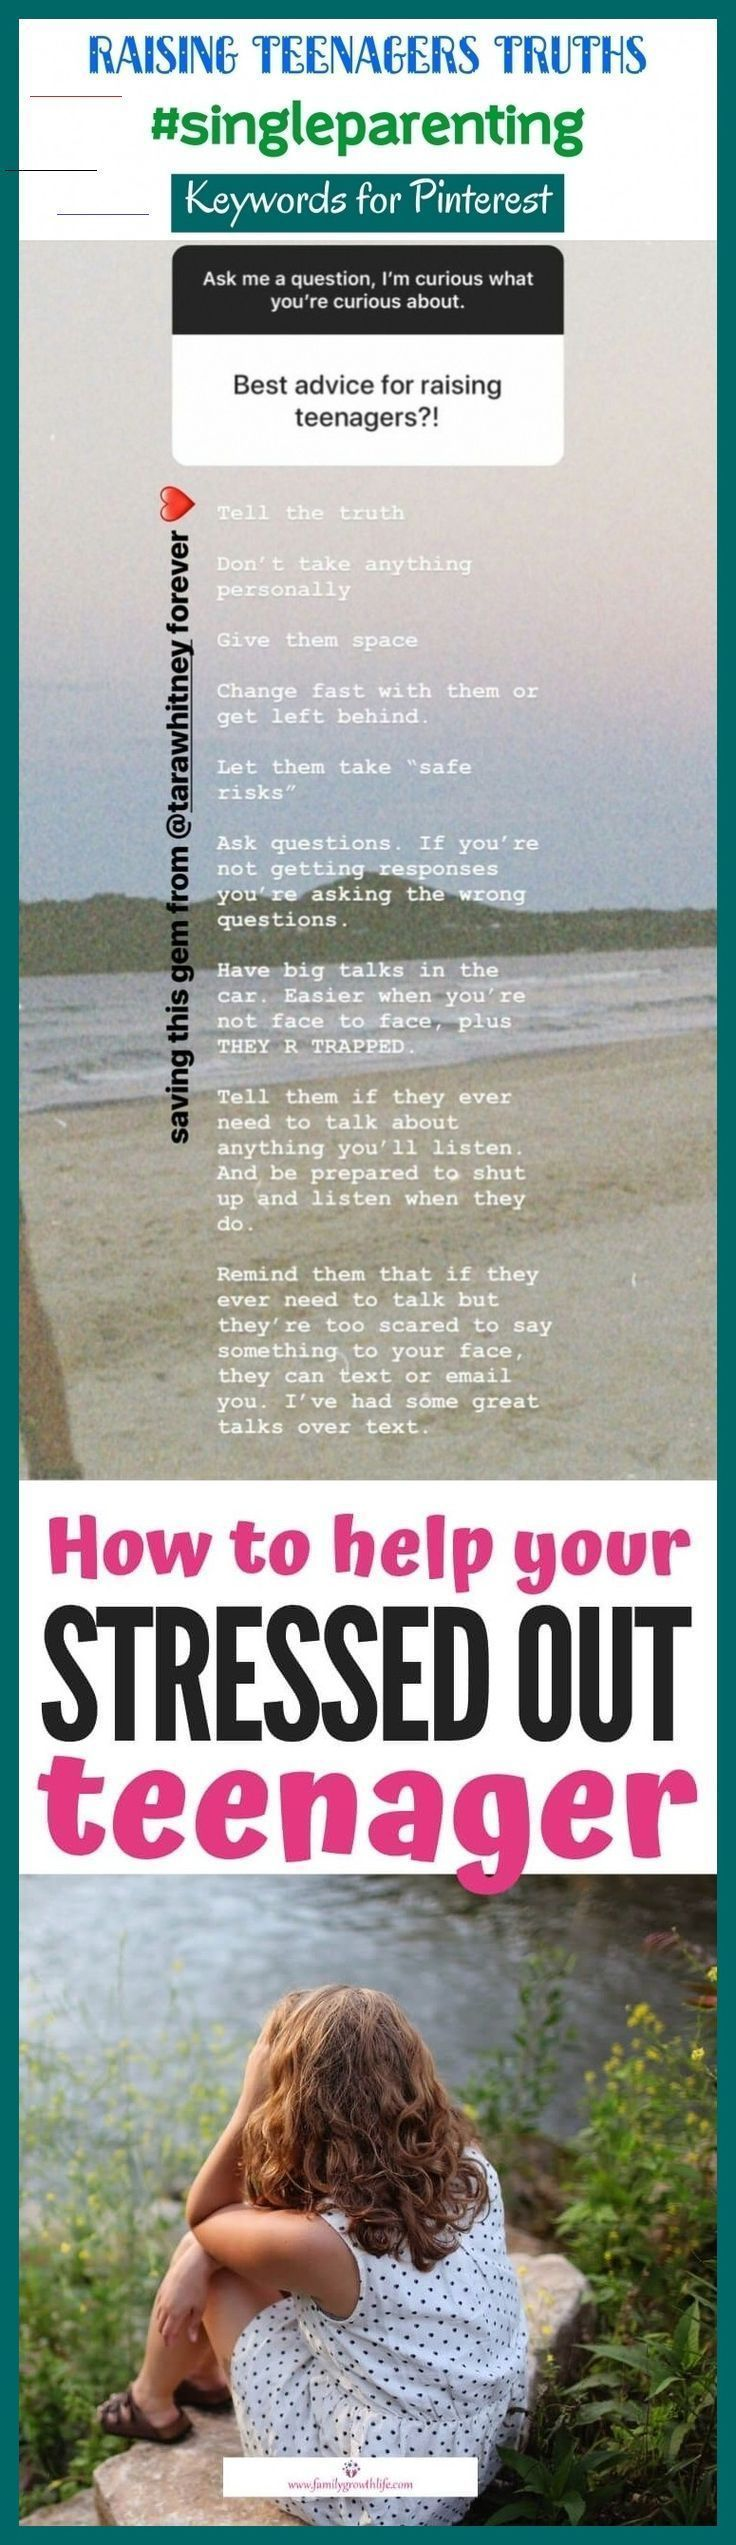 Photo of Advice for dads  #raising #teenagers #parenting #teens raising teenagers parenti